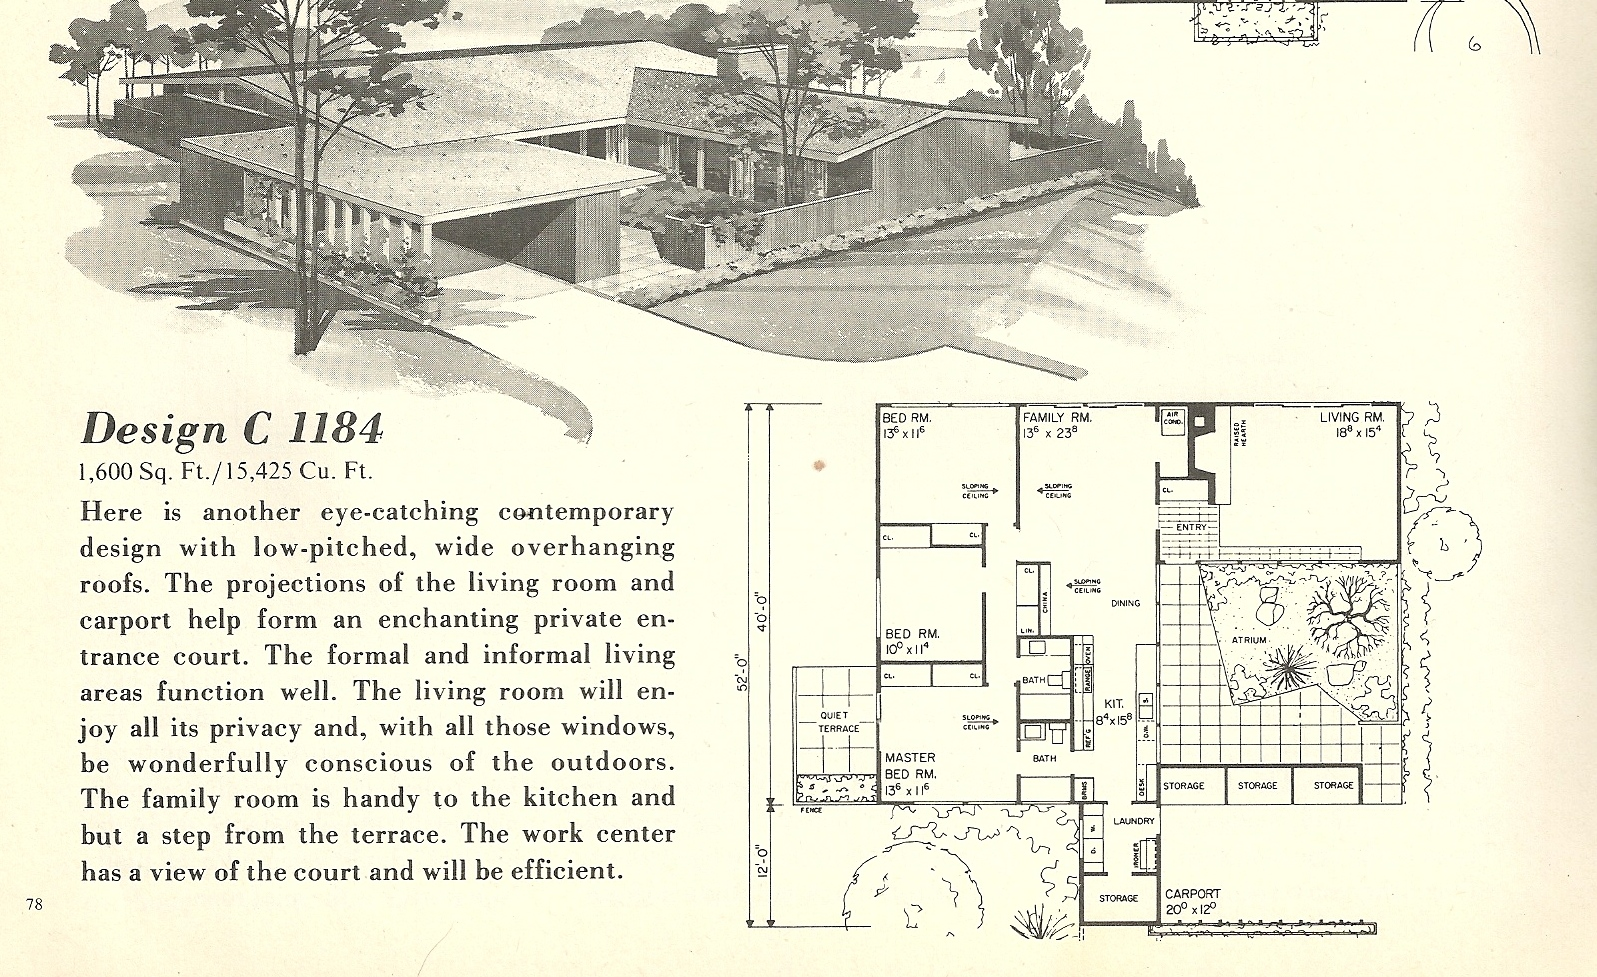 Vintage house plans 1184 antique alter ego for Mid century home plans